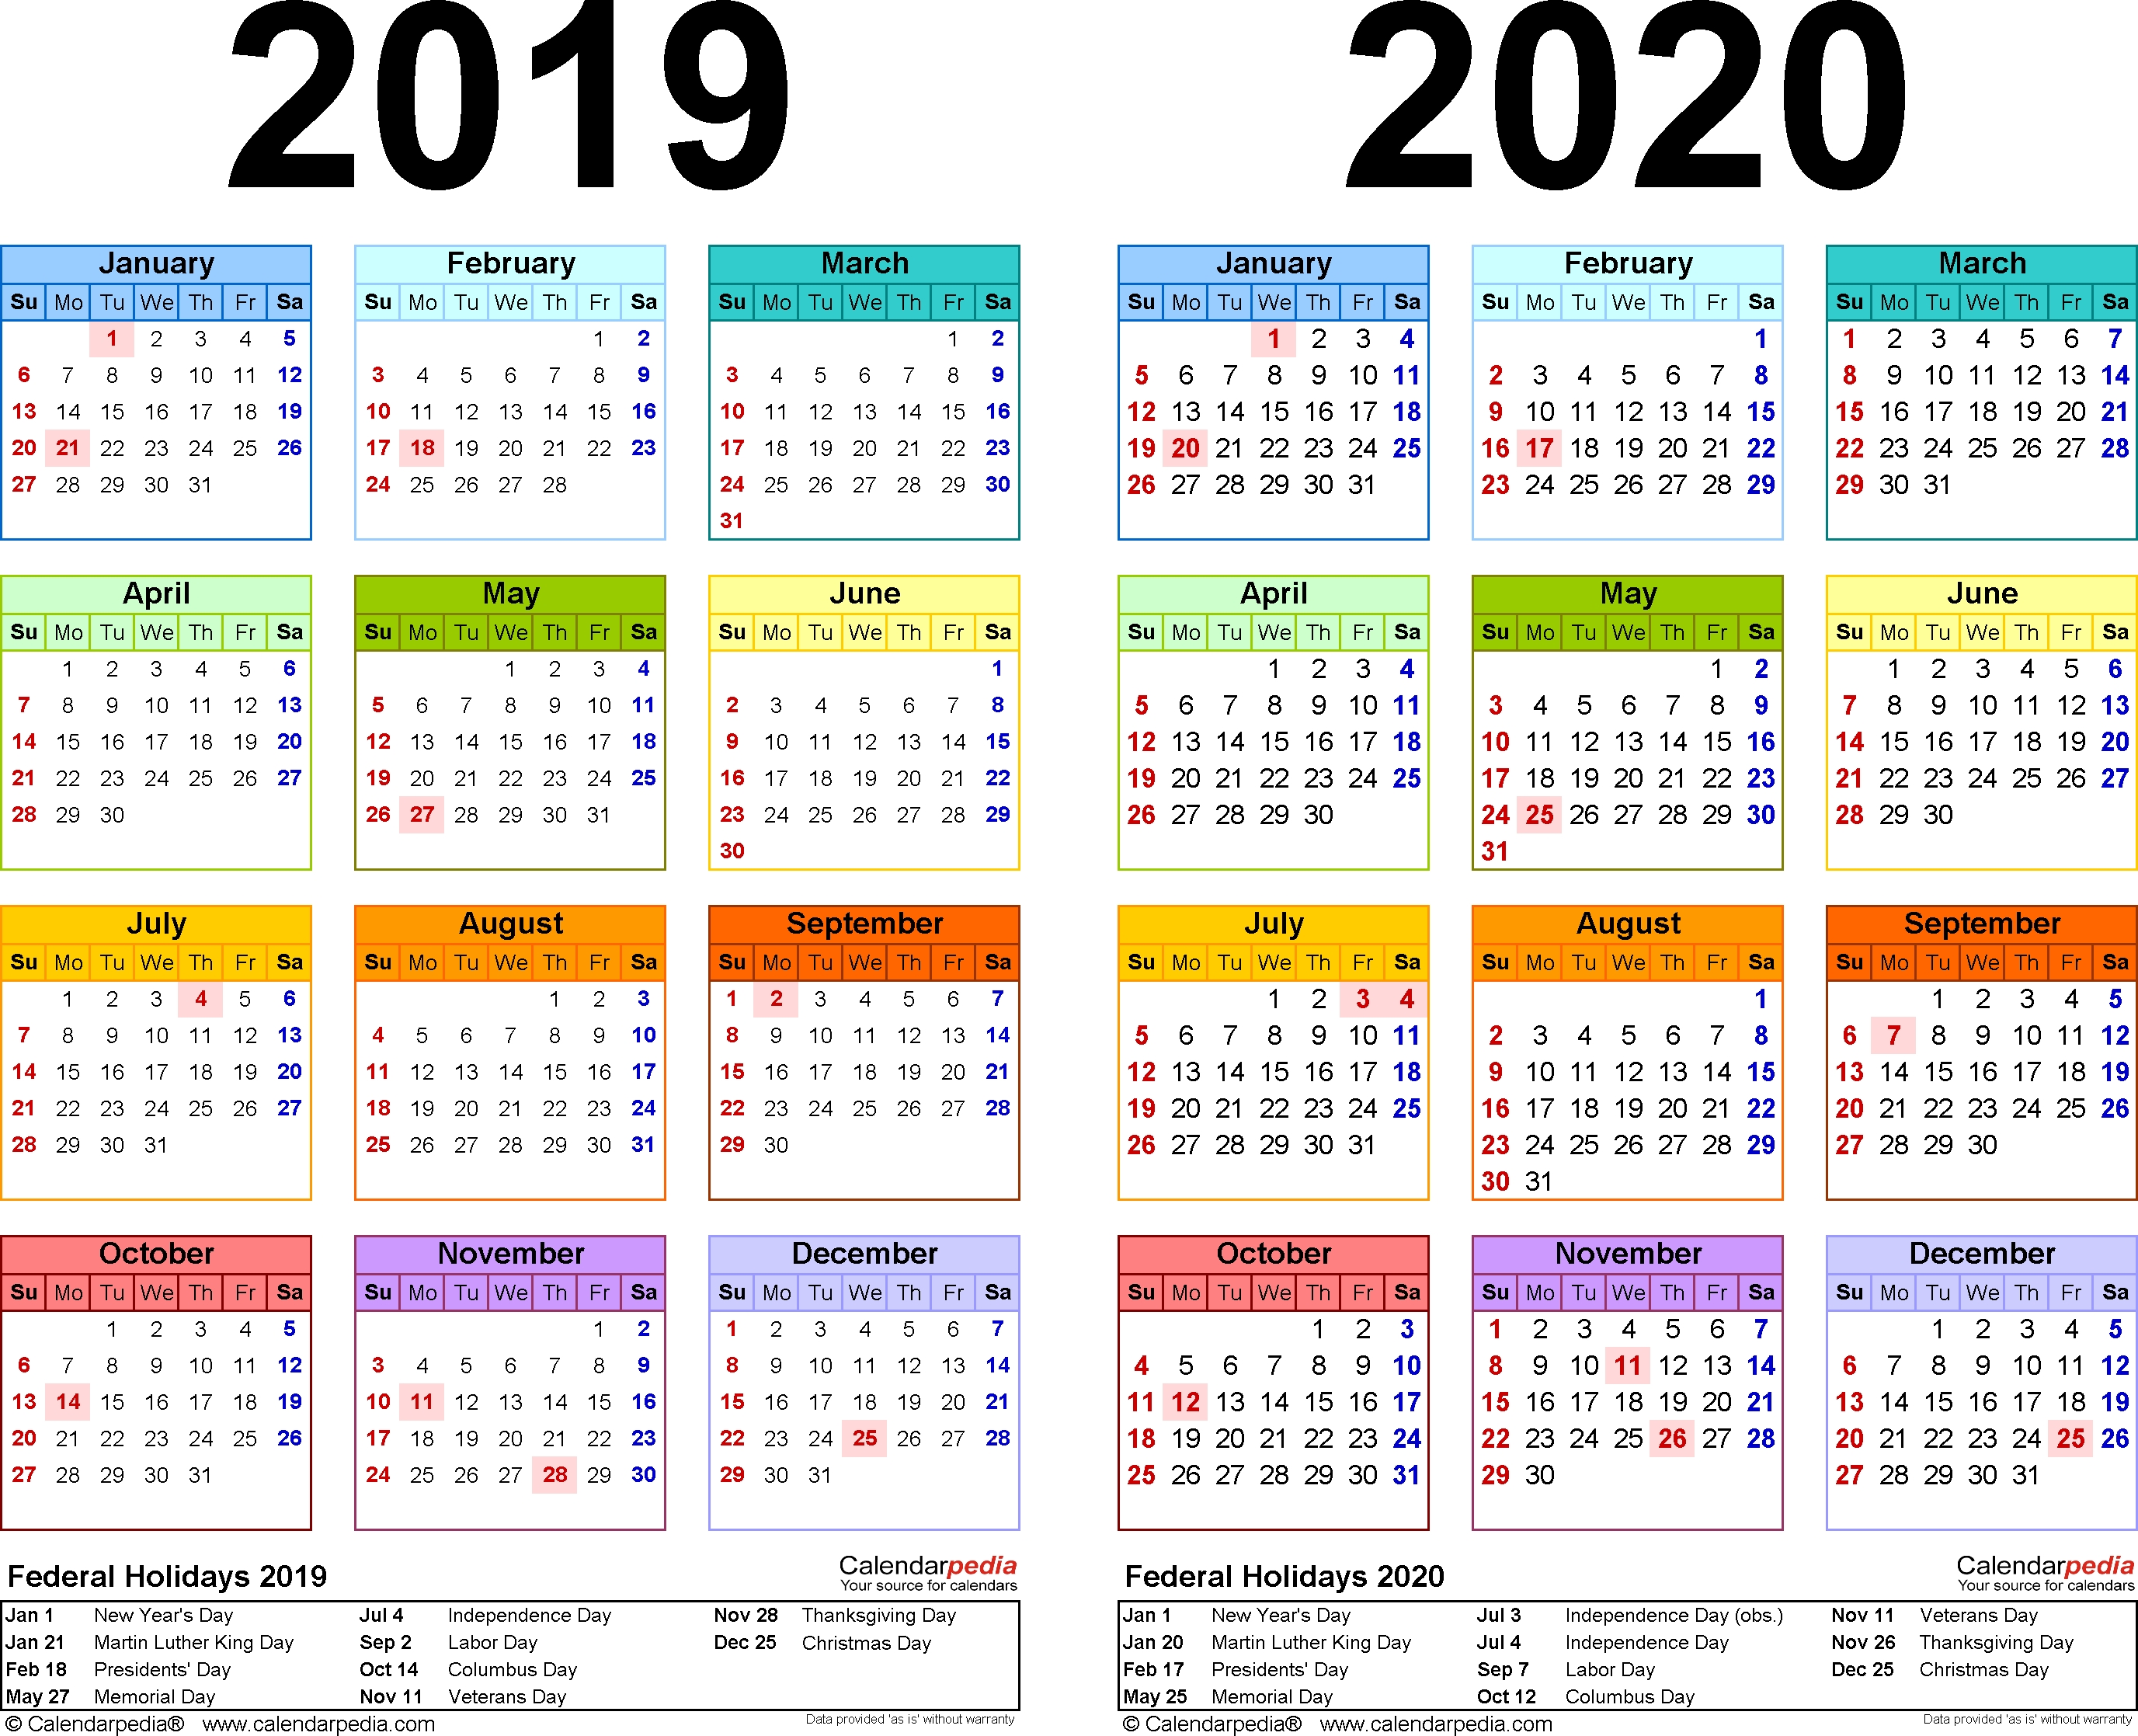 2019-2020 Calendar - Free Printable Two-Year Pdf Calendars intended for 1 Page Calendar 2019-2020 With Major Holidays